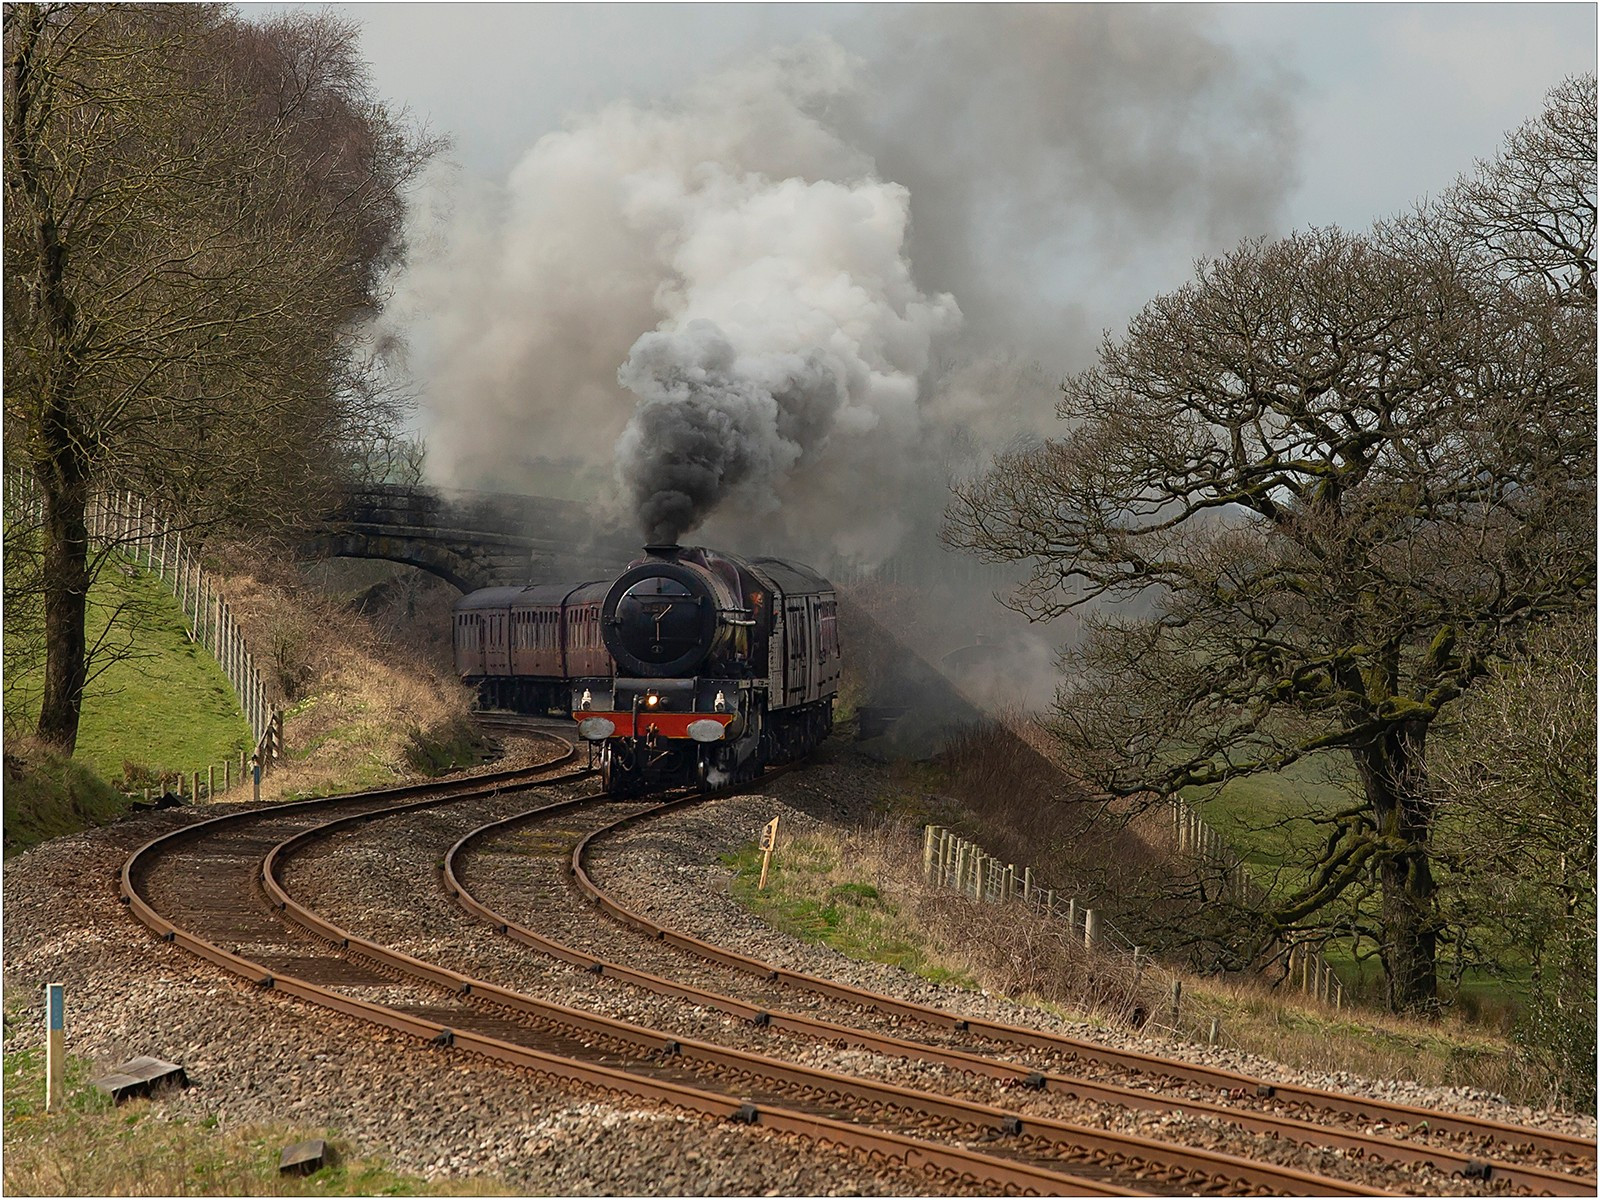 6201 Princess Elizabeth powering round the bends near Clapham